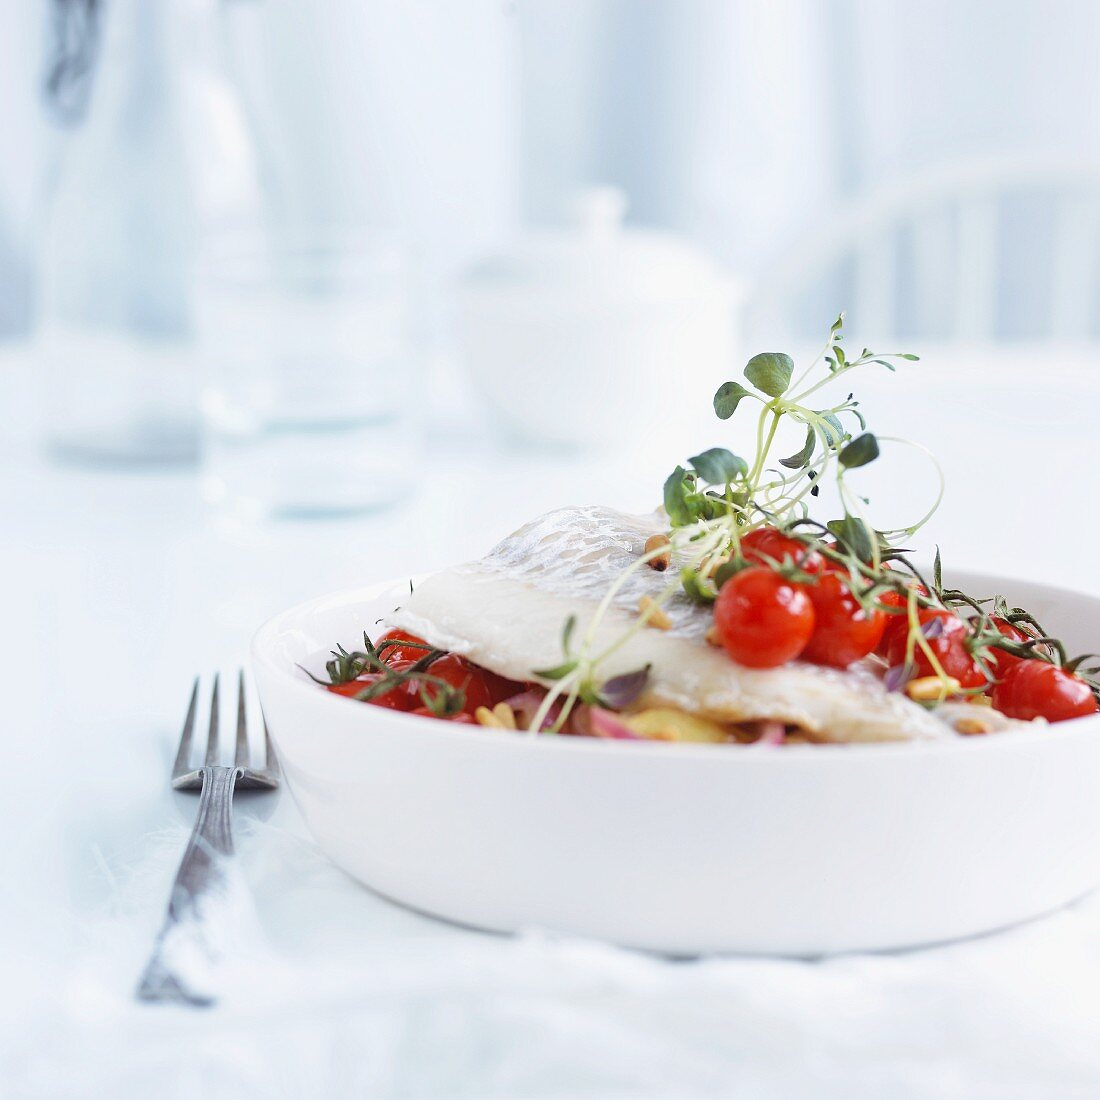 Cod with potatoes and cherry tomatoes